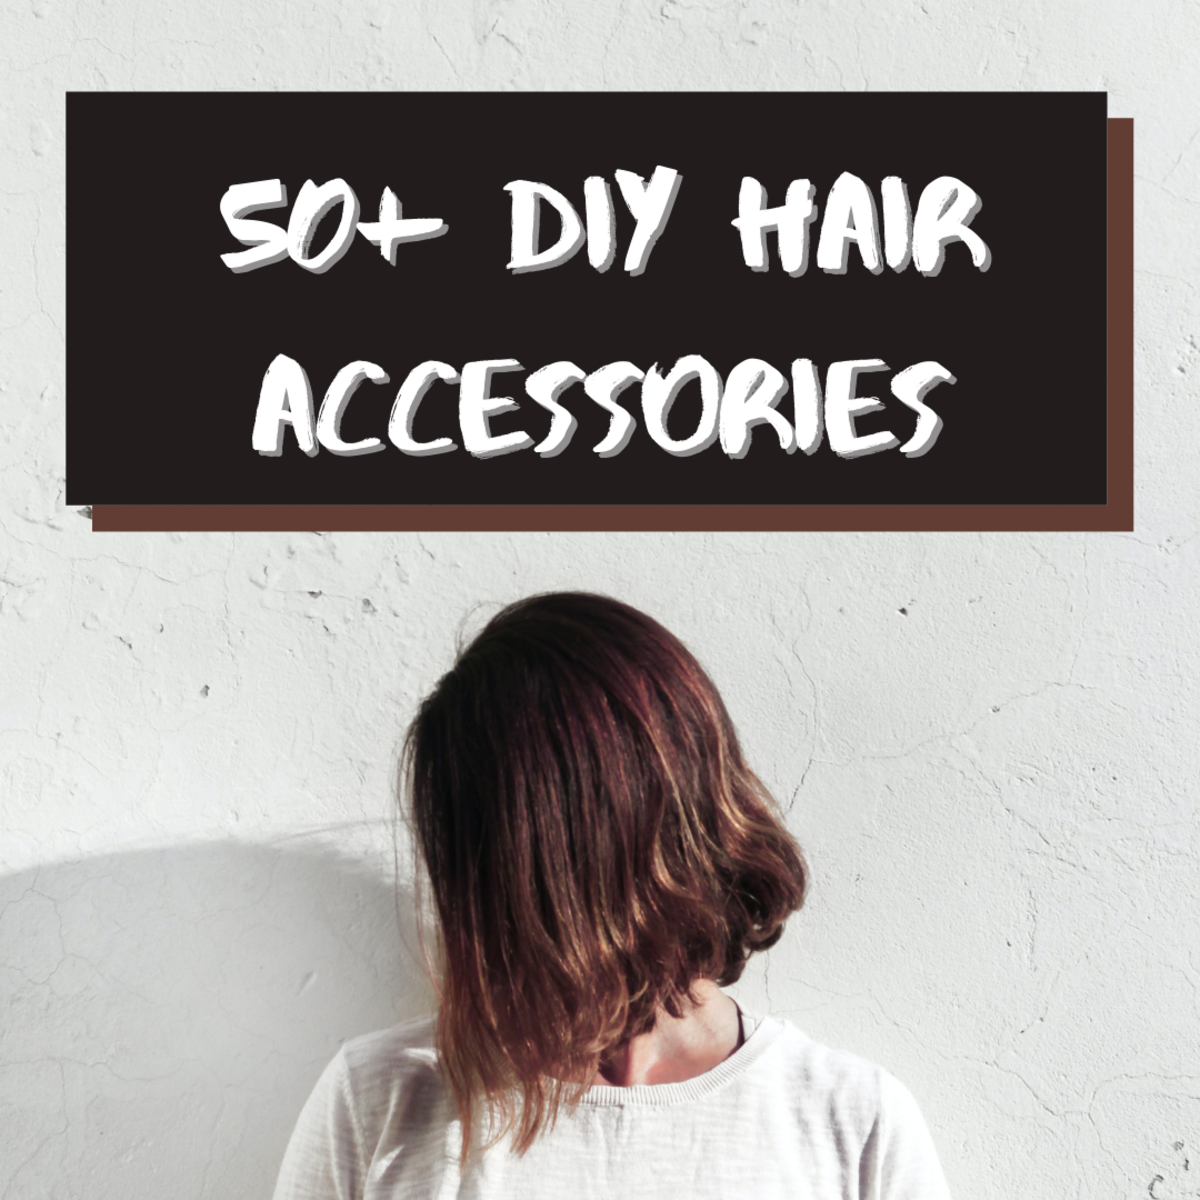 This curated list provides over 50 tutorials for creating amazing DIY hair accessories!